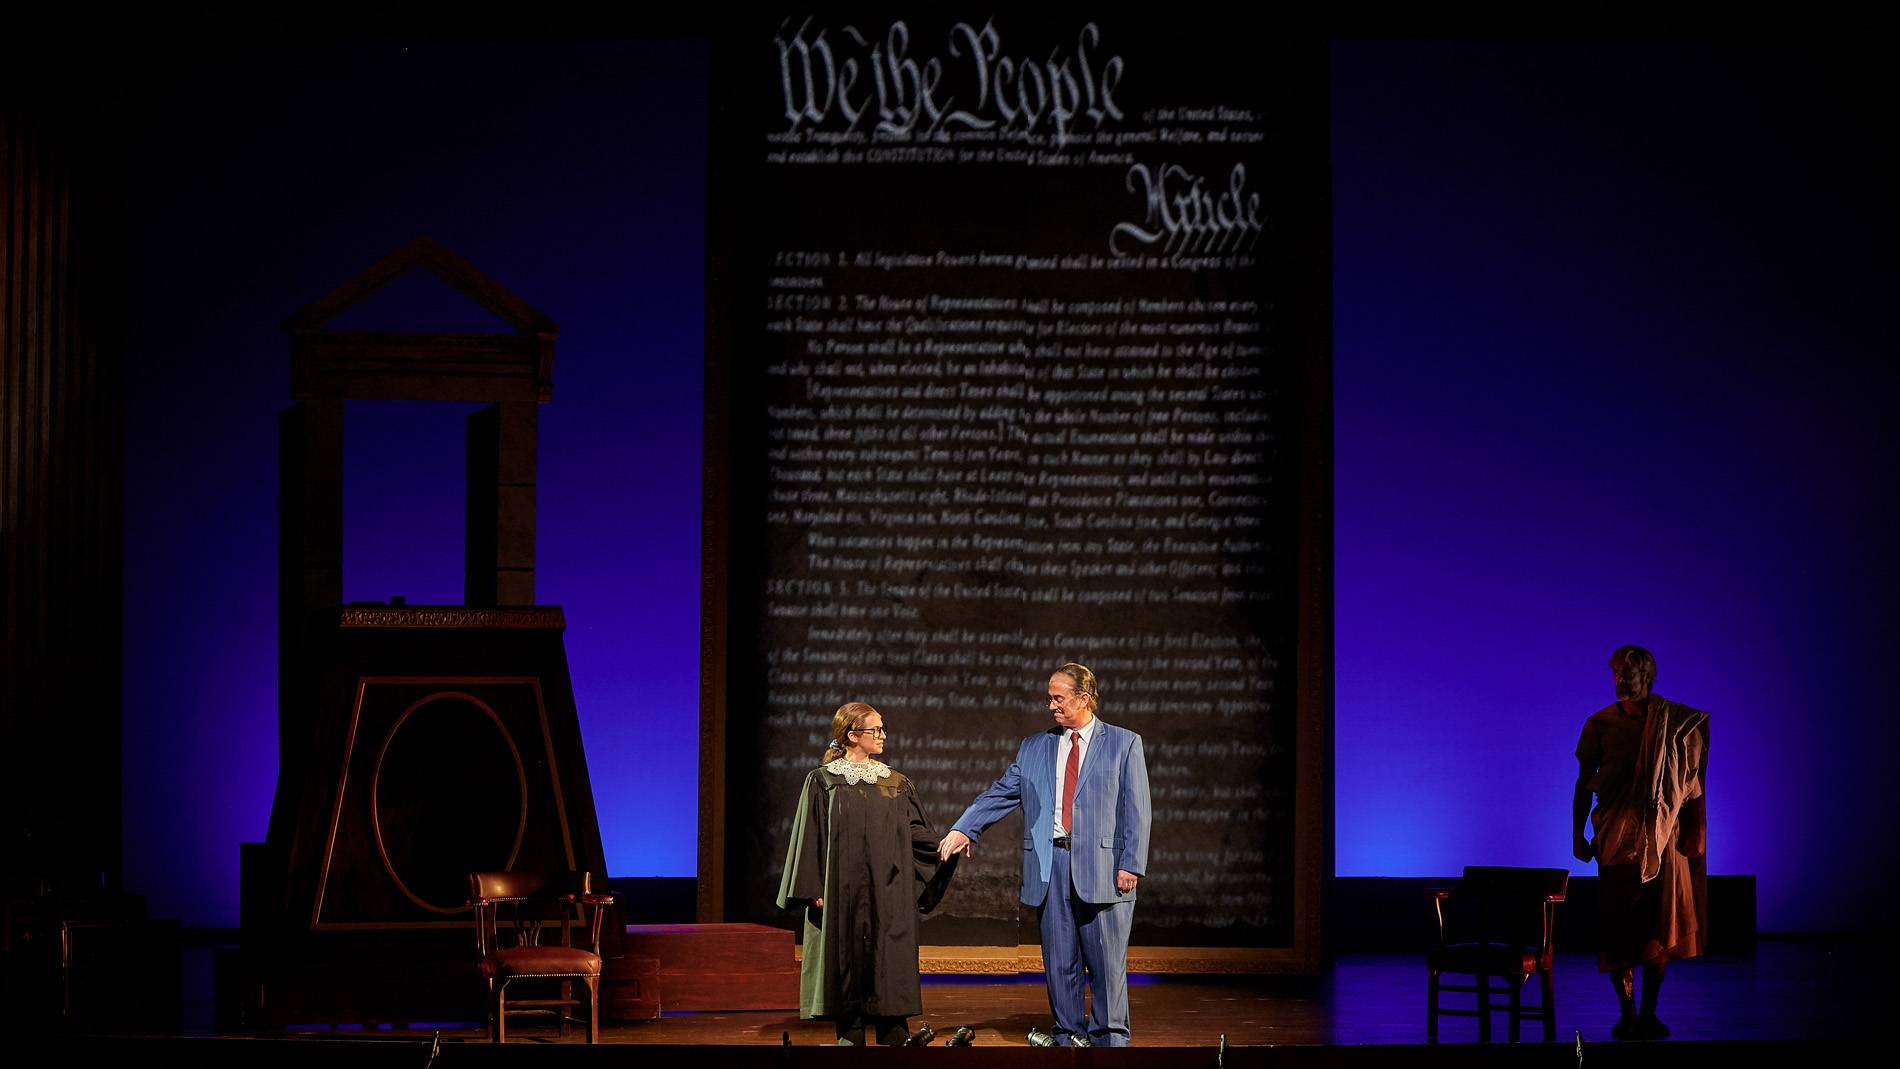 """We are different. We are one"": the 2019 OperaDelaware production of  Scalia/Ginsburg . L to R: Jennifer Zetlan (Justice Ginsburg), Brian Cheney (Justice Scalia), Ben Wager (The Commentator). Photo: Justin Heyes, Moonloop Photography."